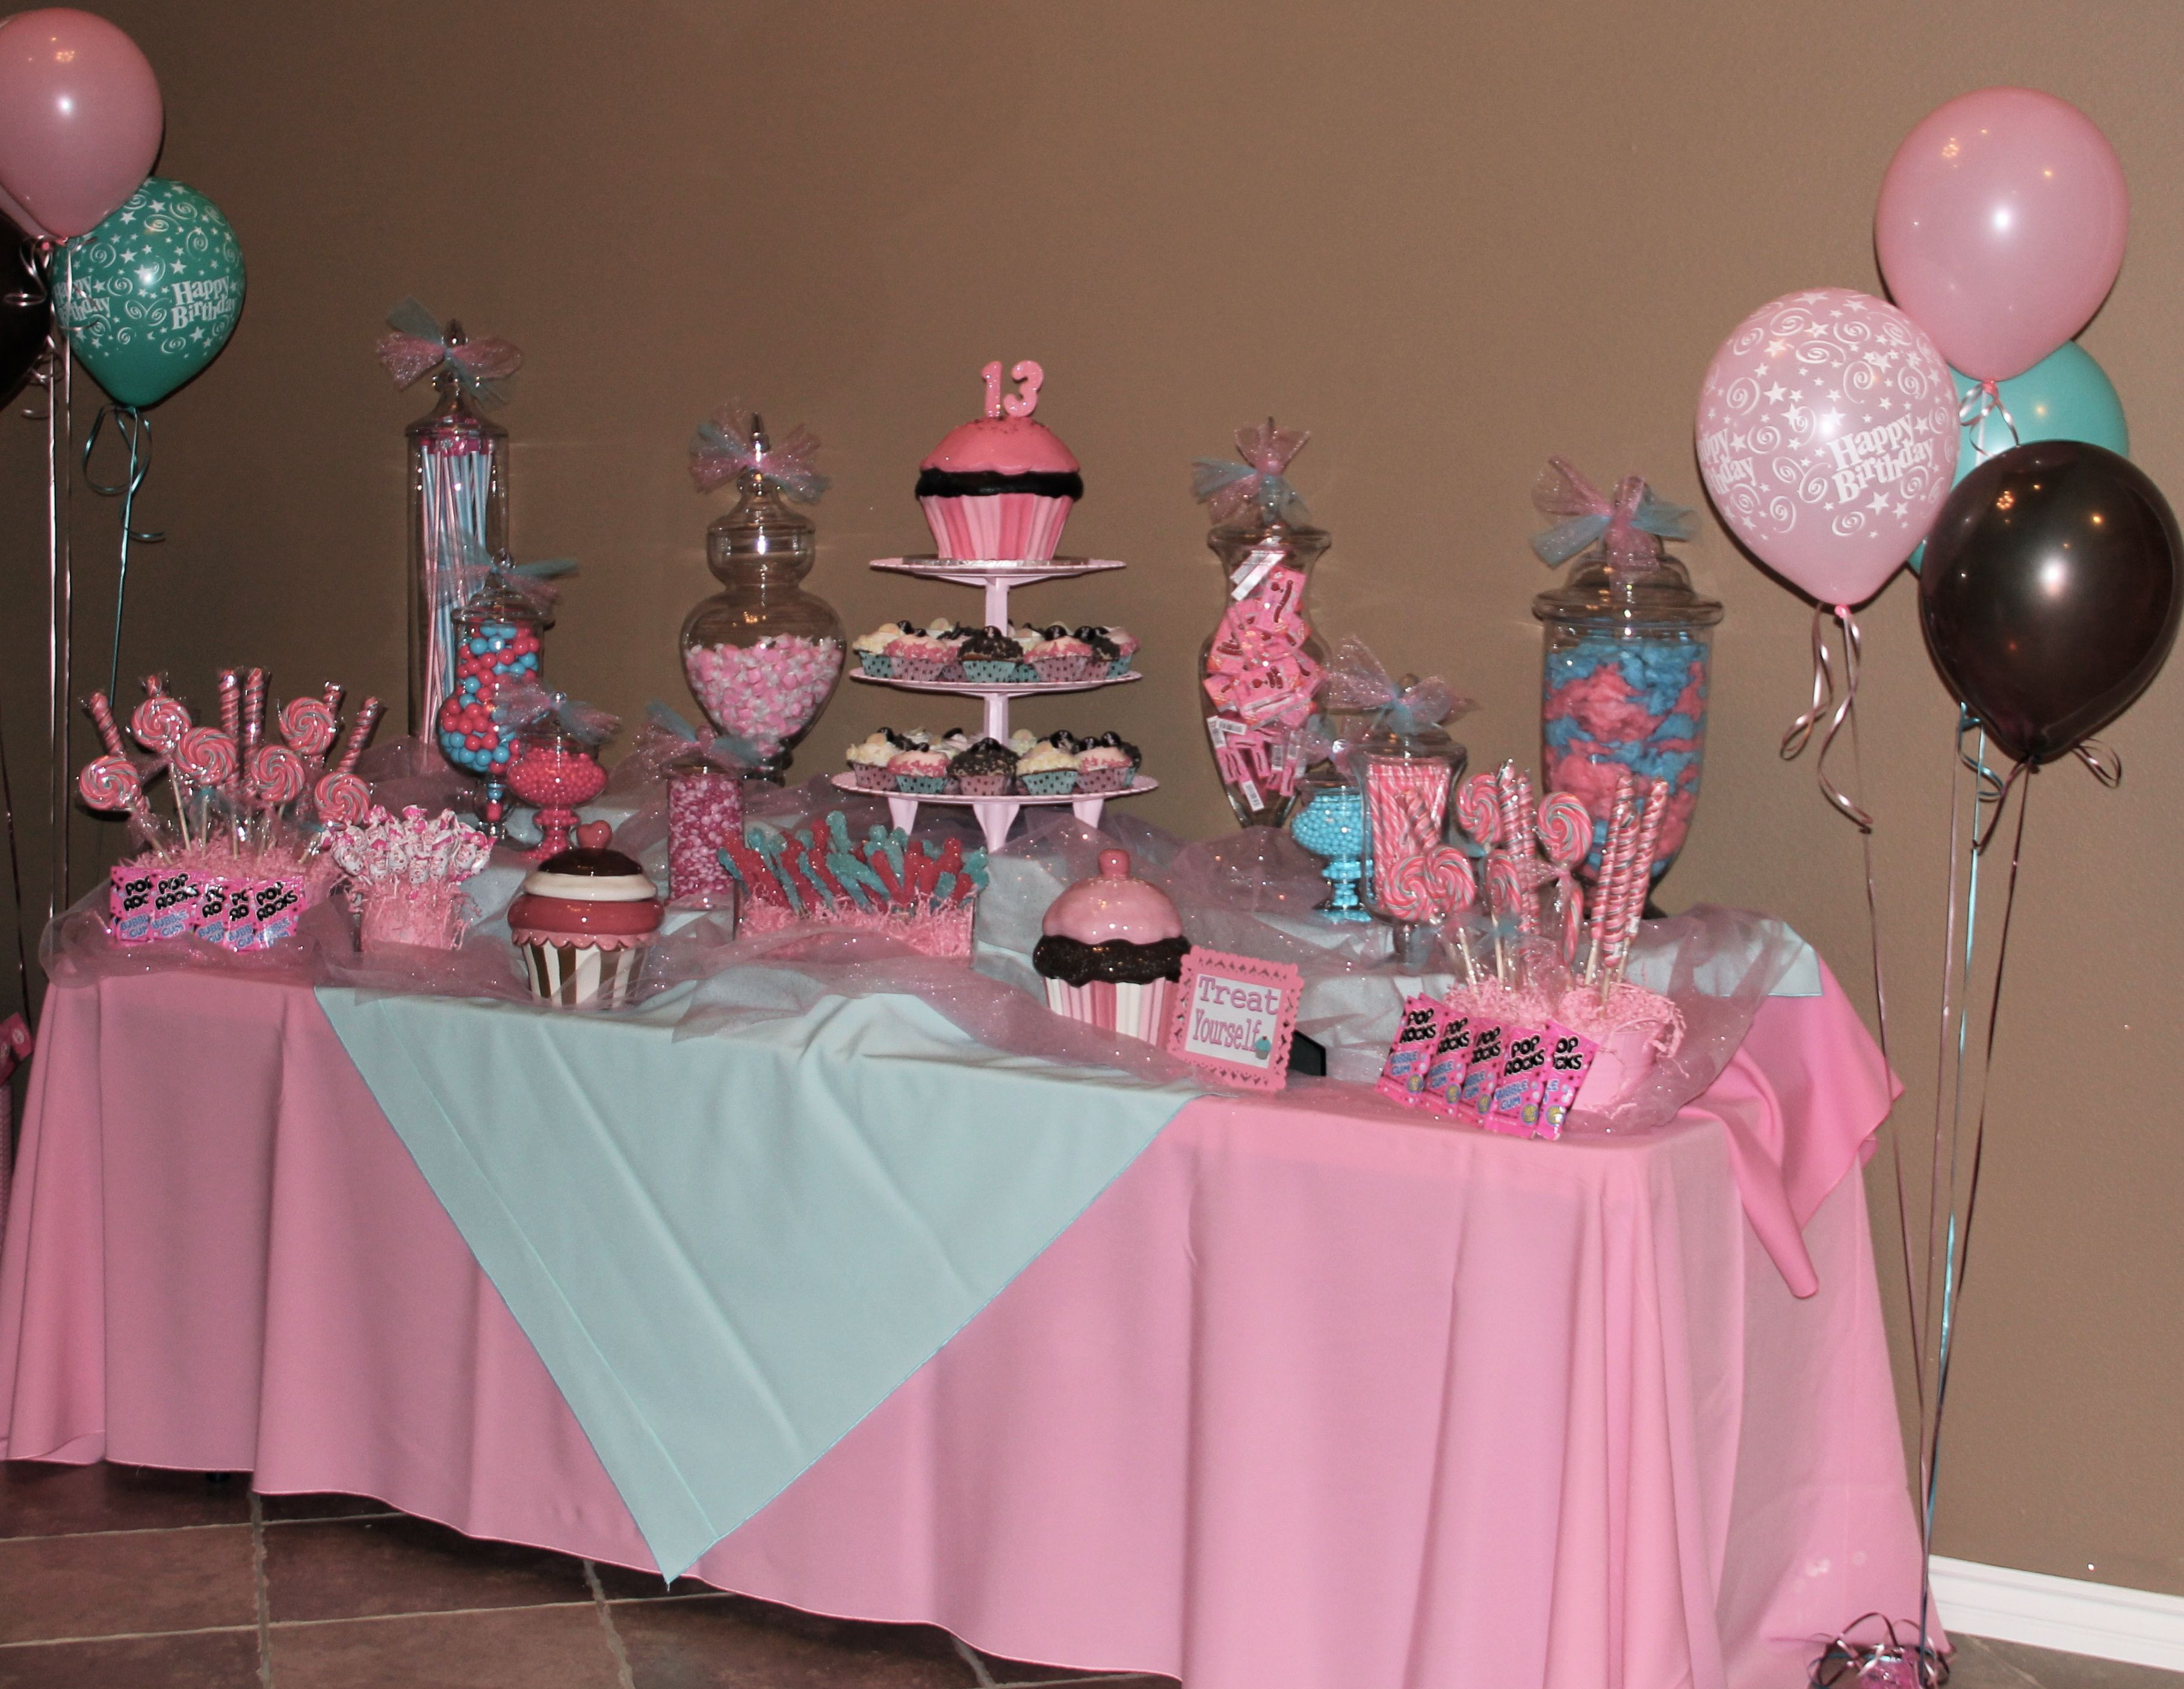 Best ideas about 13th Birthday Decorations . Save or Pin Candy Bar Tays 13th Birthday CUTE PARTY STUFF Now.